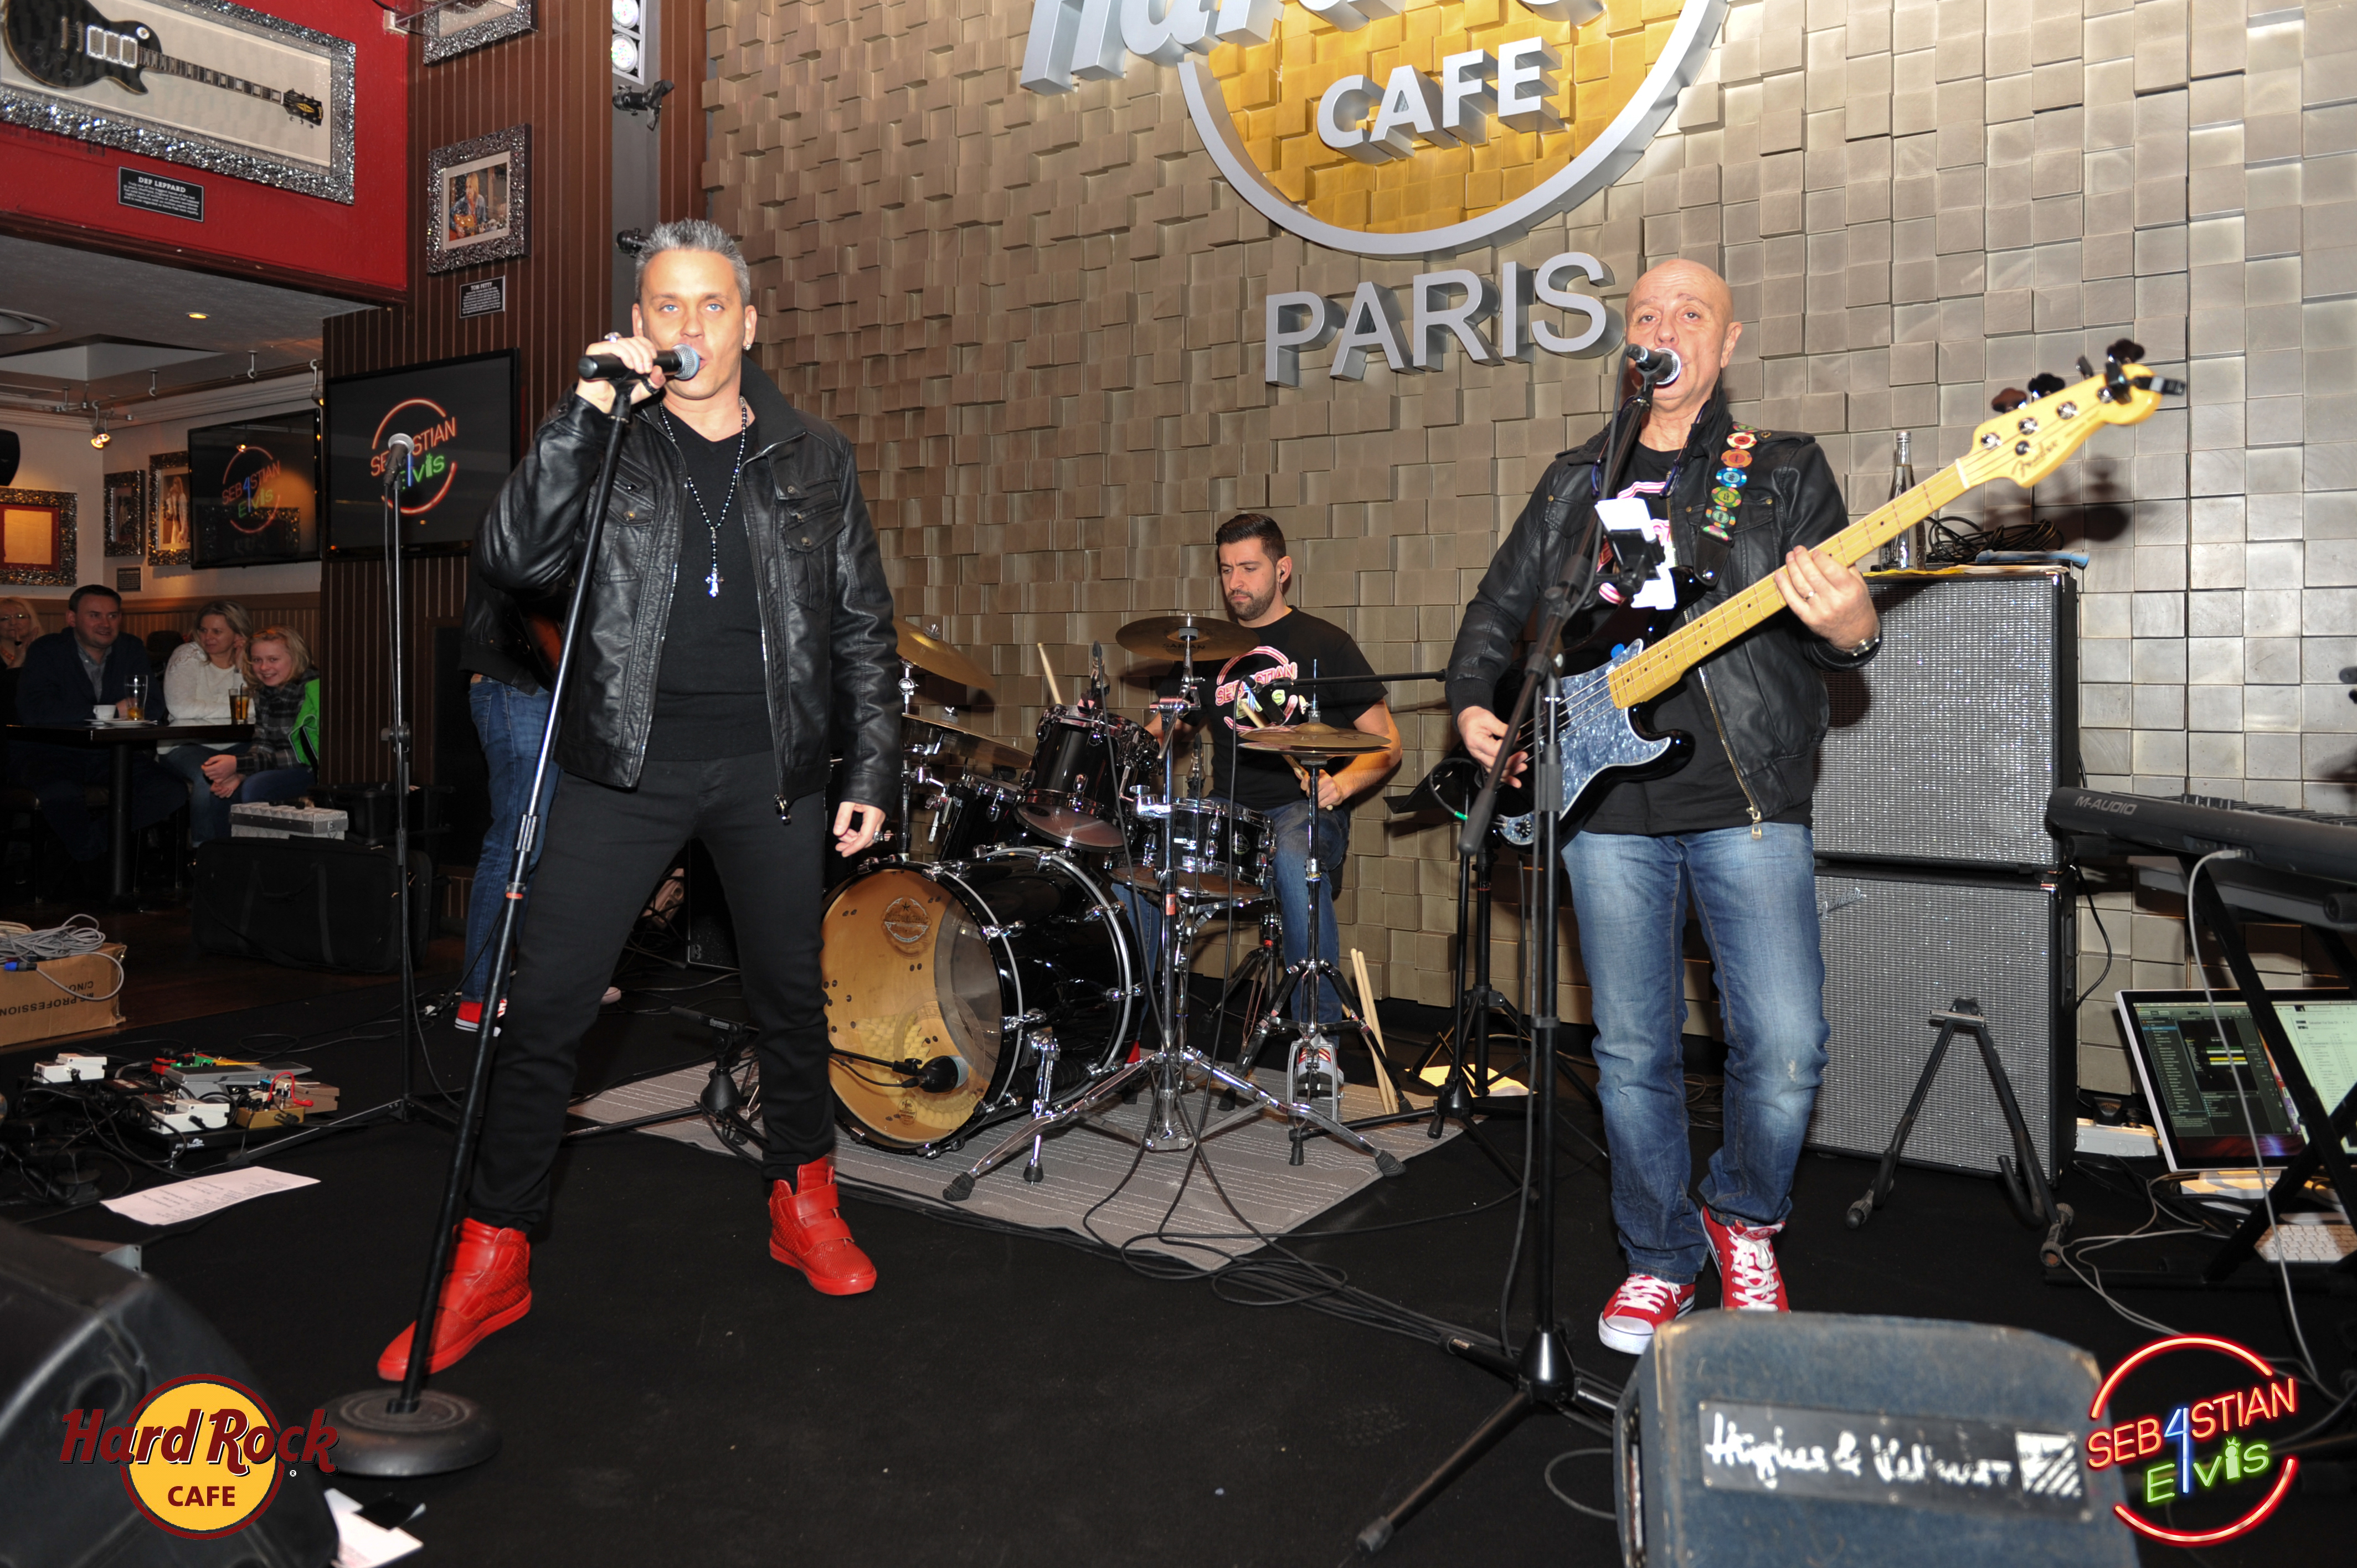 hard-rock-cafe-paris-elvis-night-27 janvier-2016-sebastian-for-elvis-facebook-memorial-show-0045